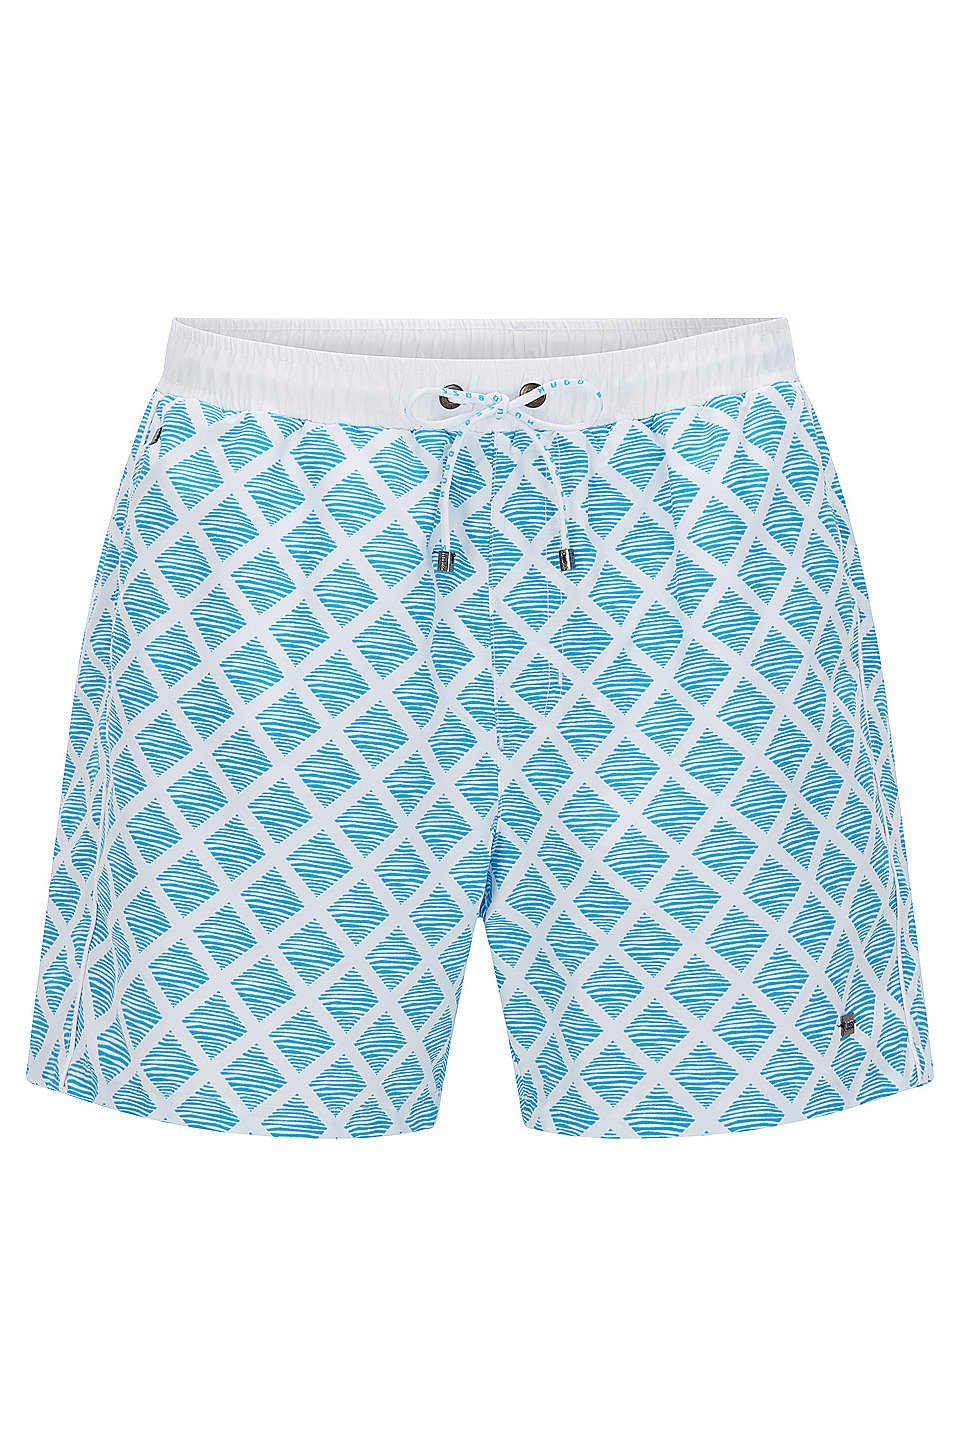 d0f64c7fa6 BOSS - Diamond Print Quick Dry Swim Trunk | Starfish